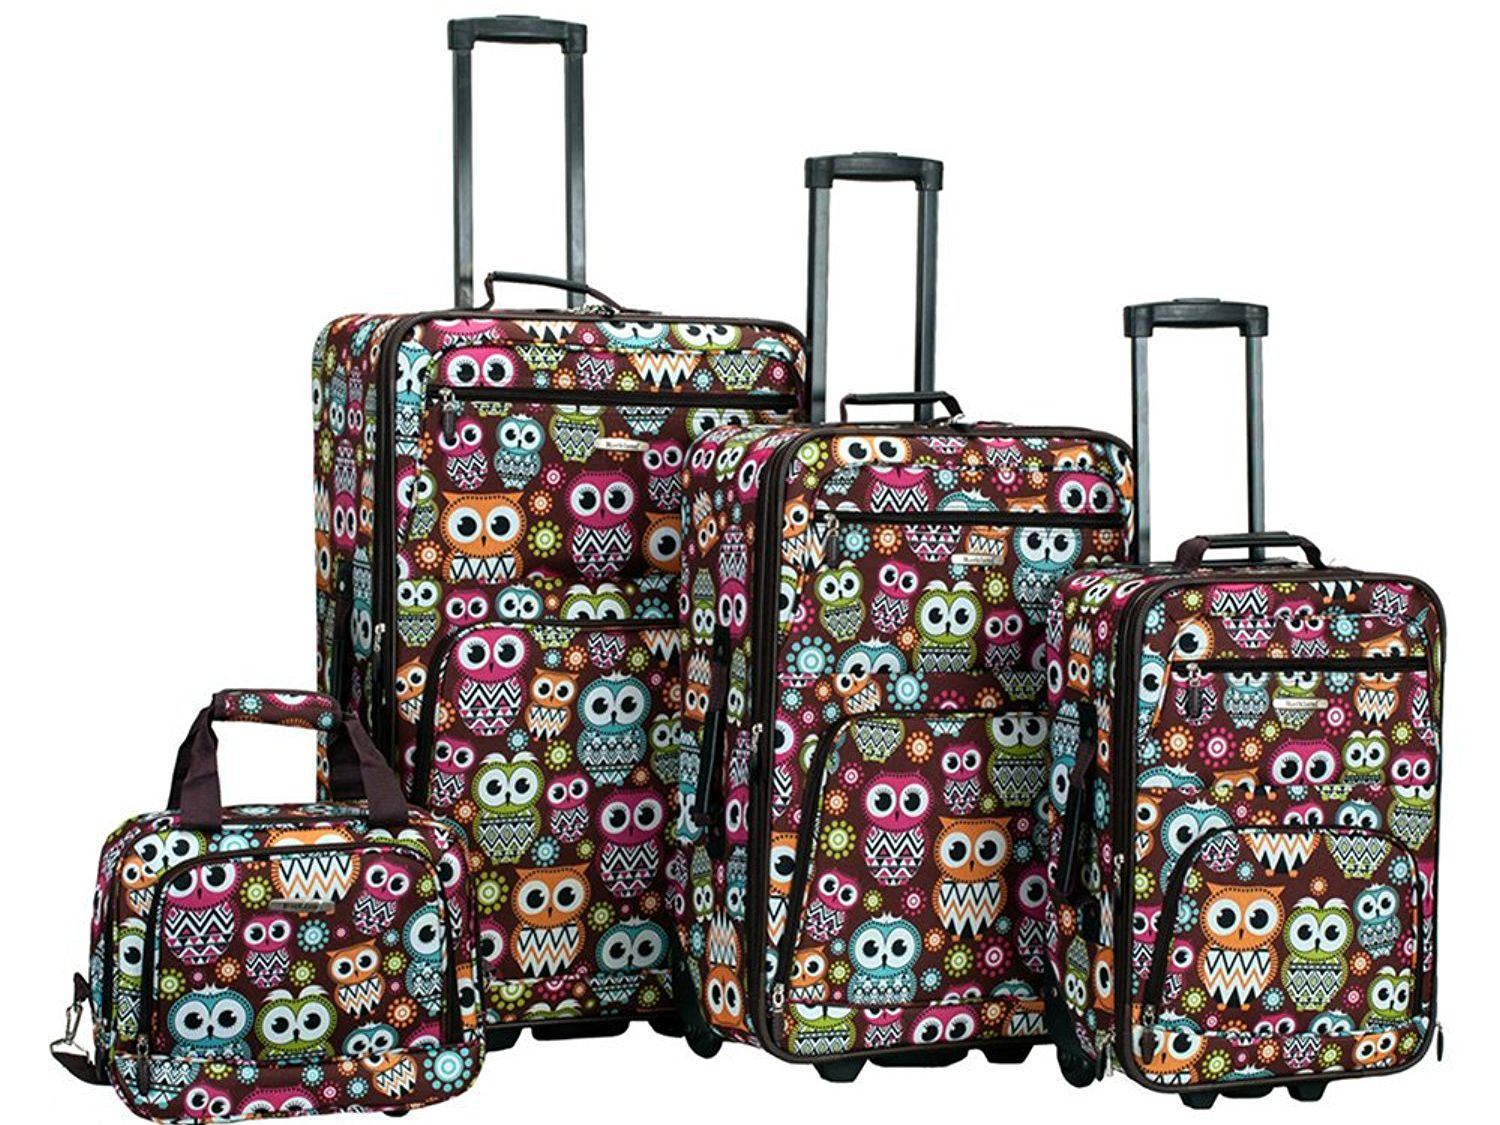 ca2f141ae The 8 Best Rockland Luggage Items of 2019